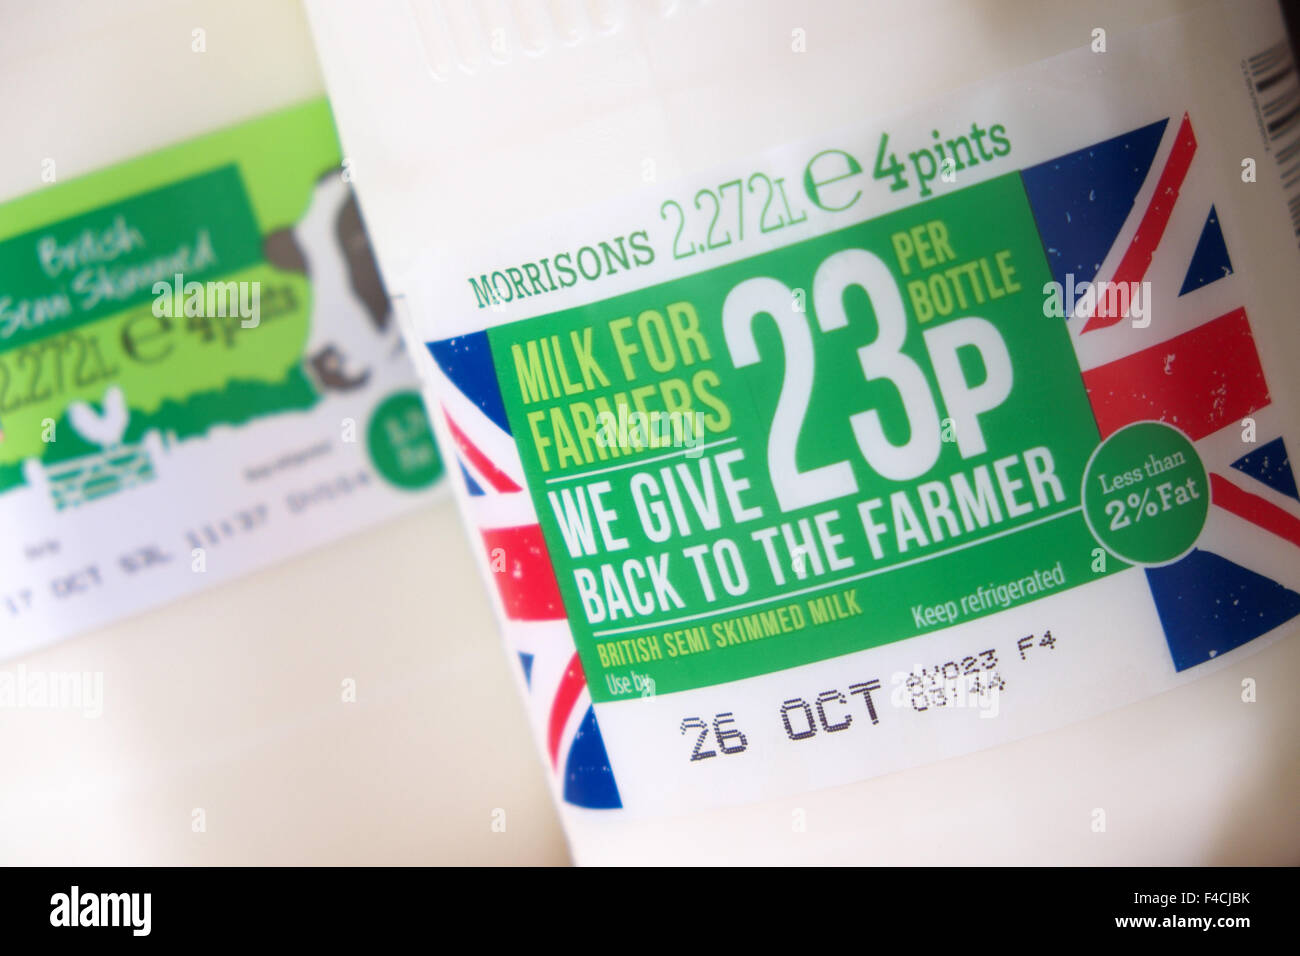 UK. 16th October 2015 - Morrisons supermarket have now introduced their own brand 'Milk For Farmers' product. - Stock Image